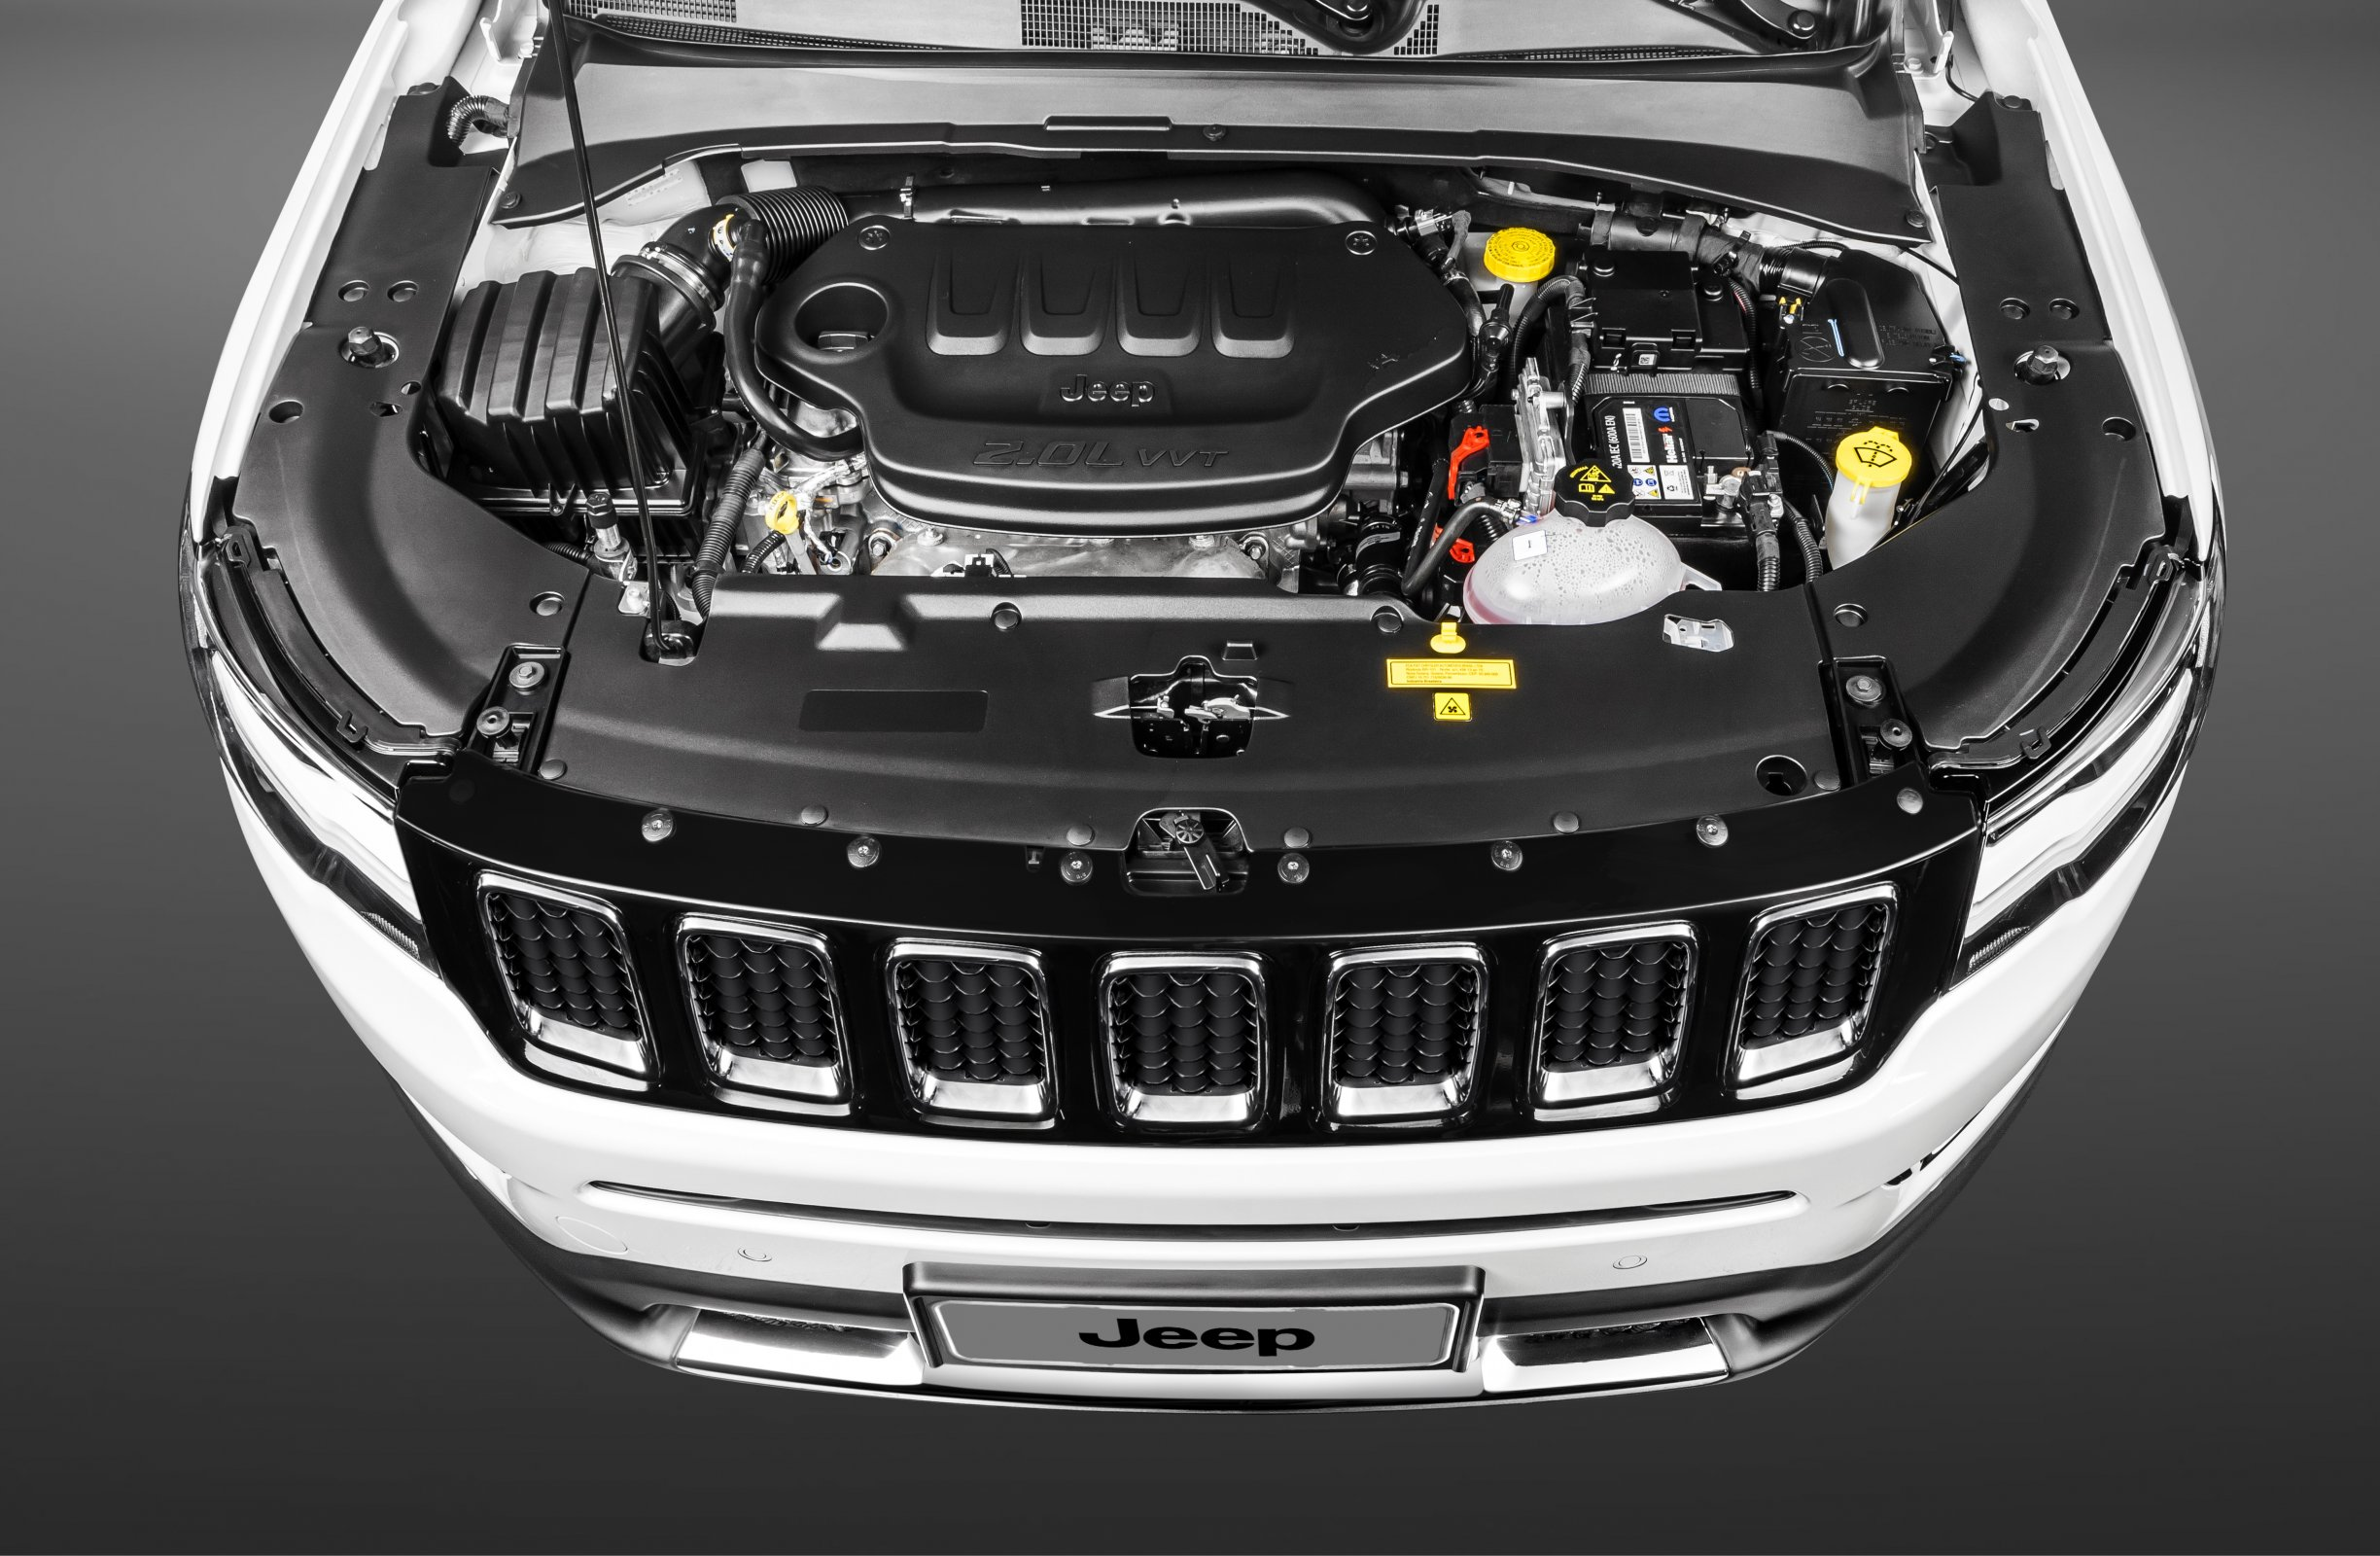 jeep_compass_limited_036.jpg